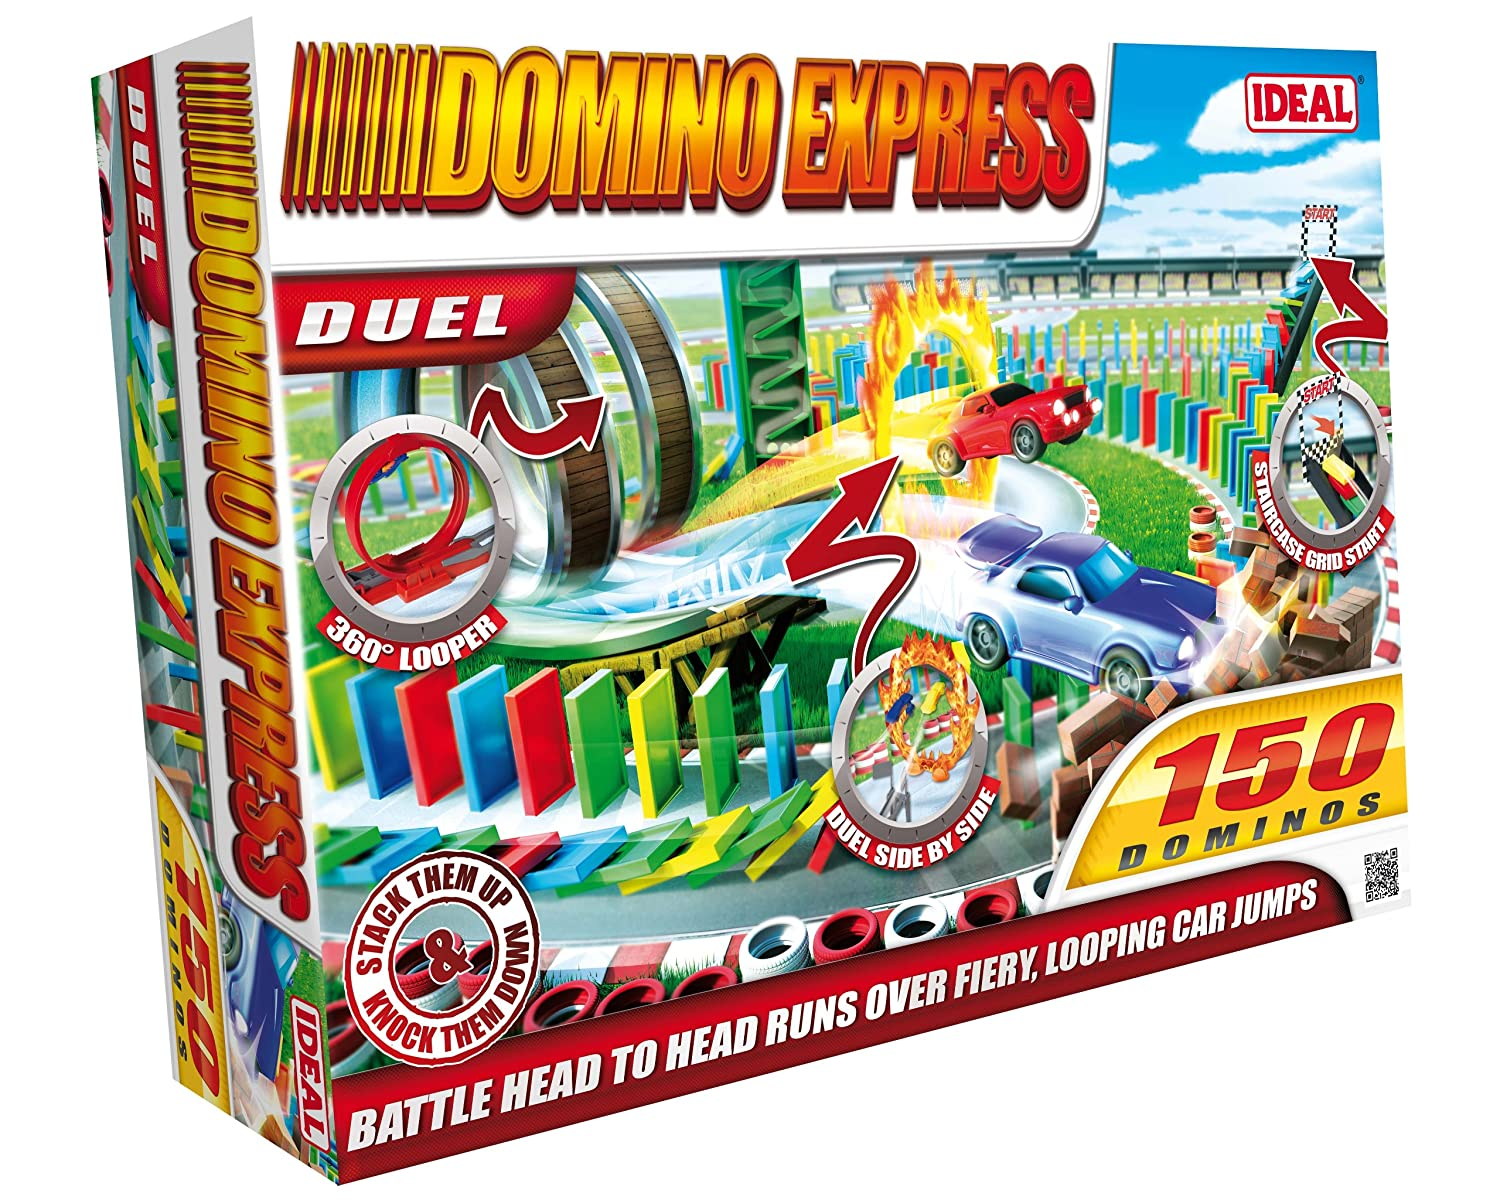 Ideal 9821 Domino Express Duel